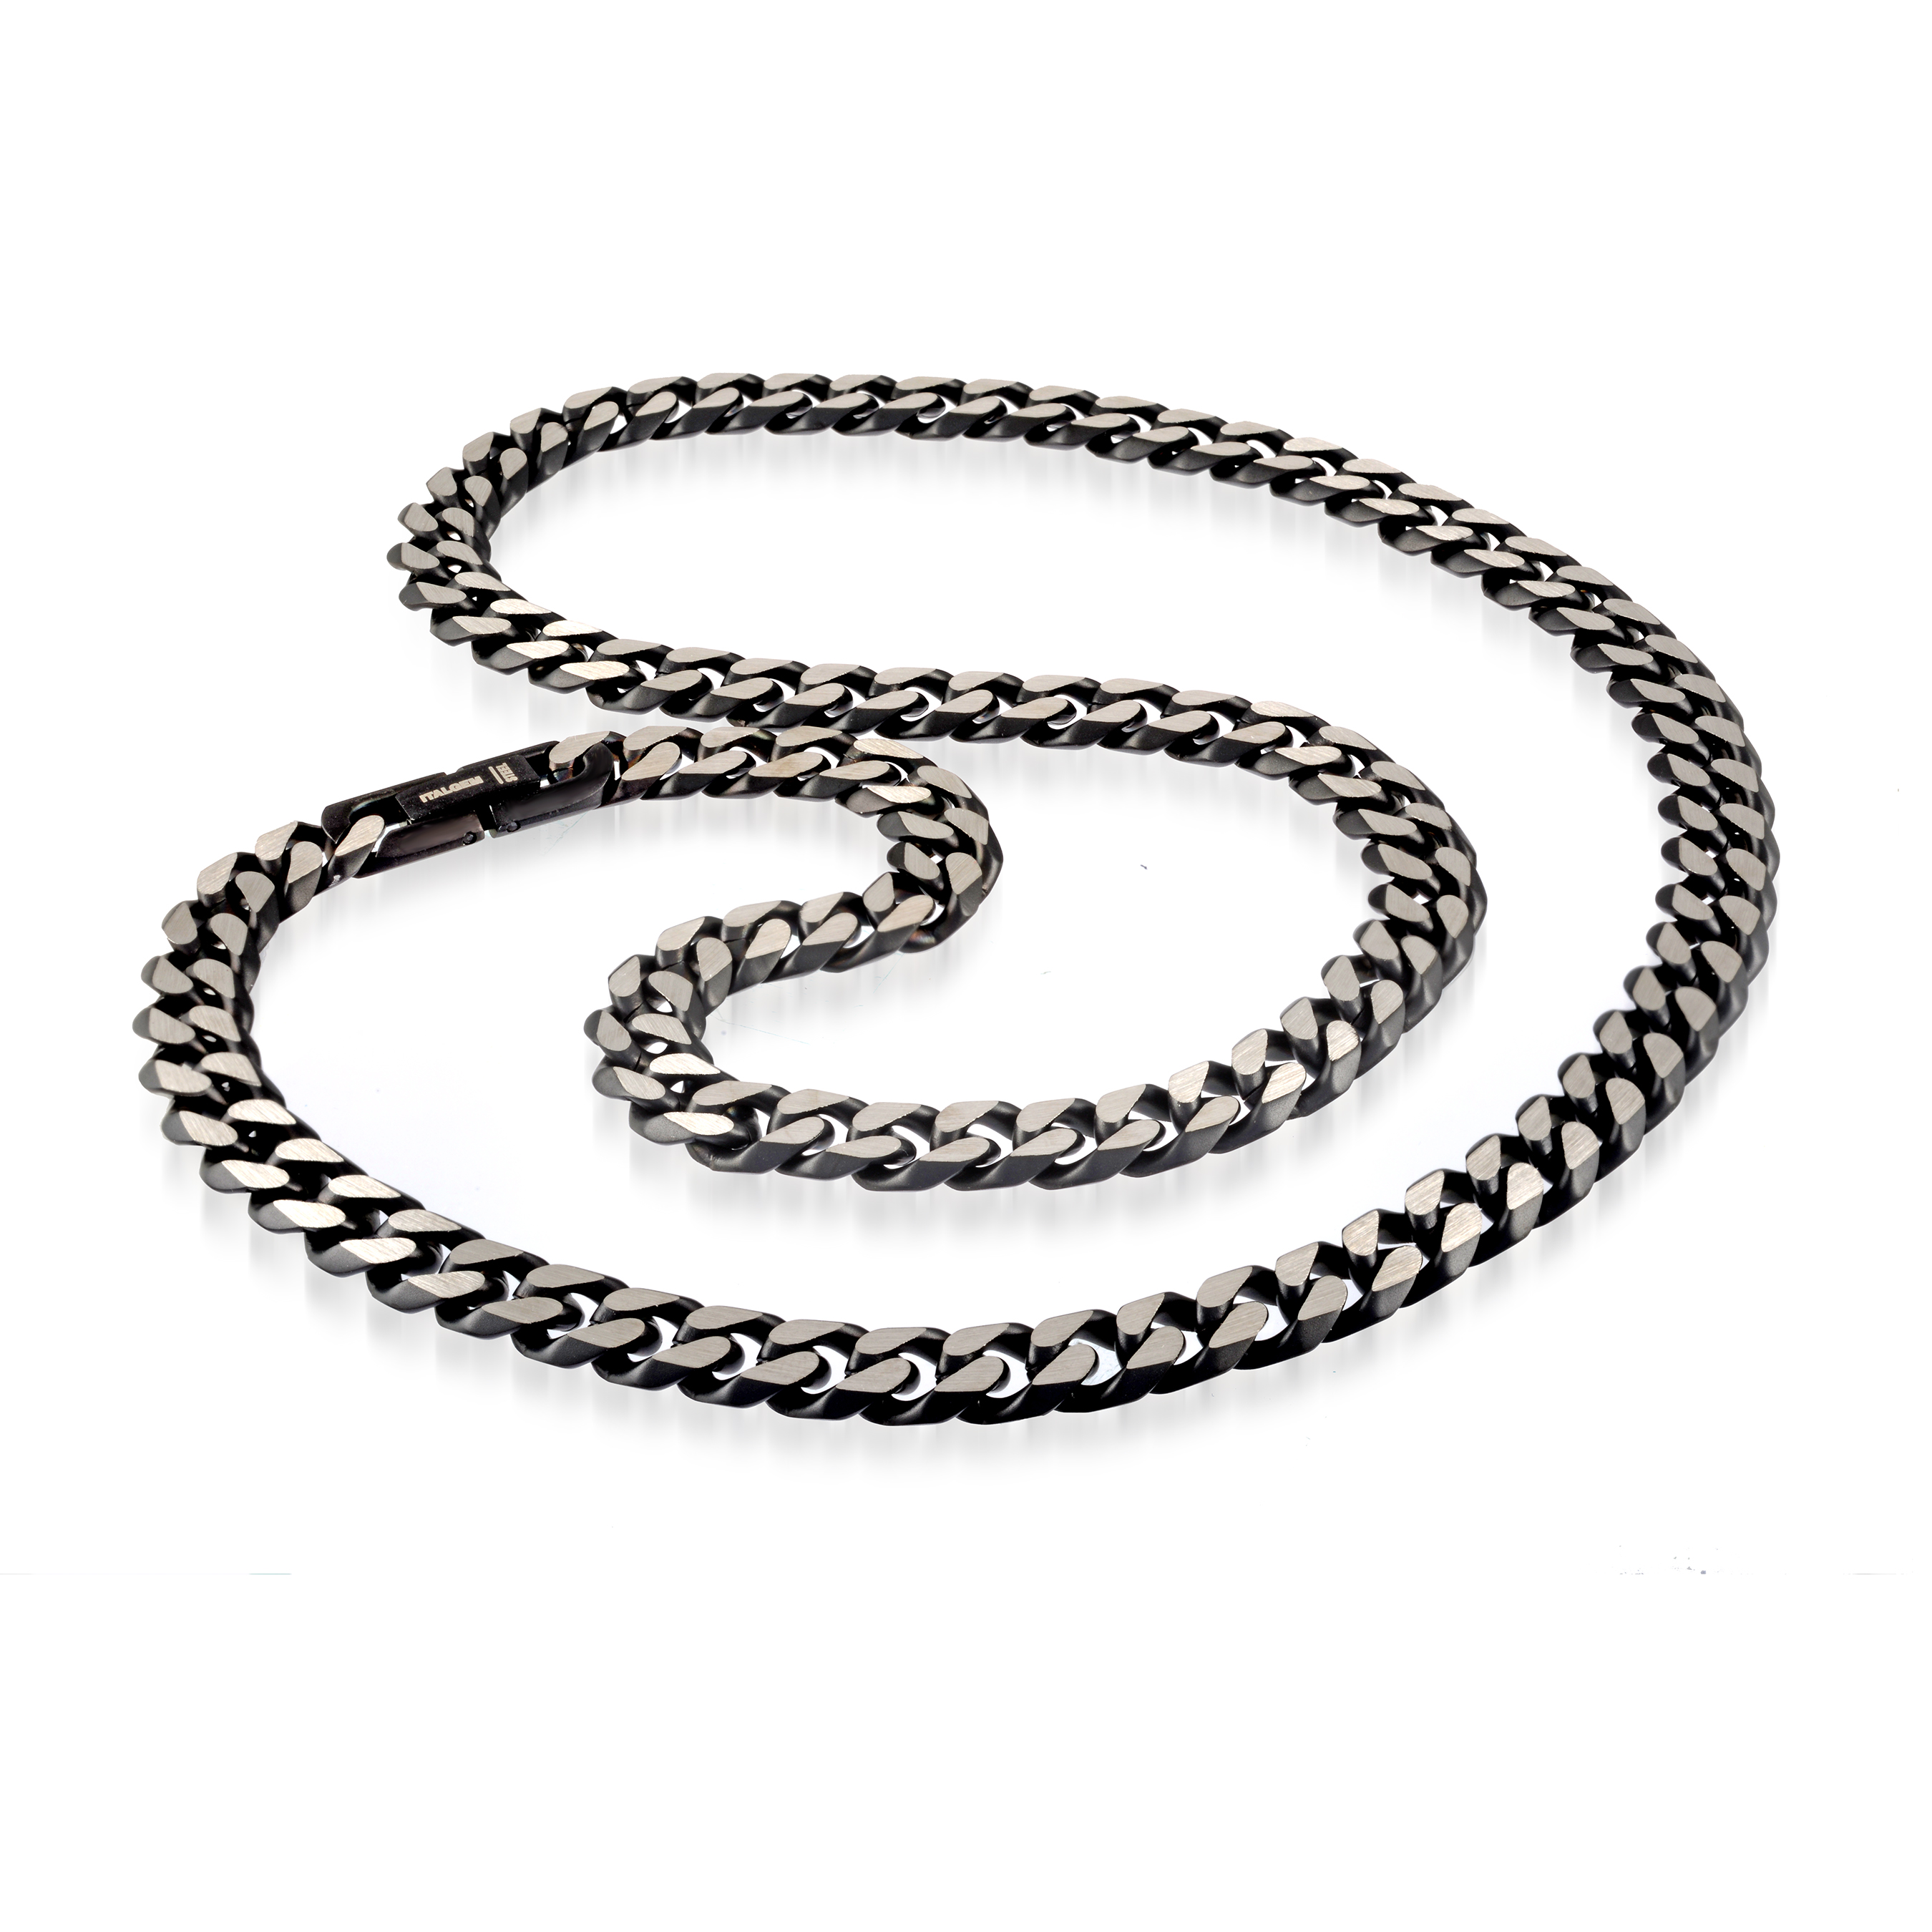 24'' Chain - 2-tone stainless steel